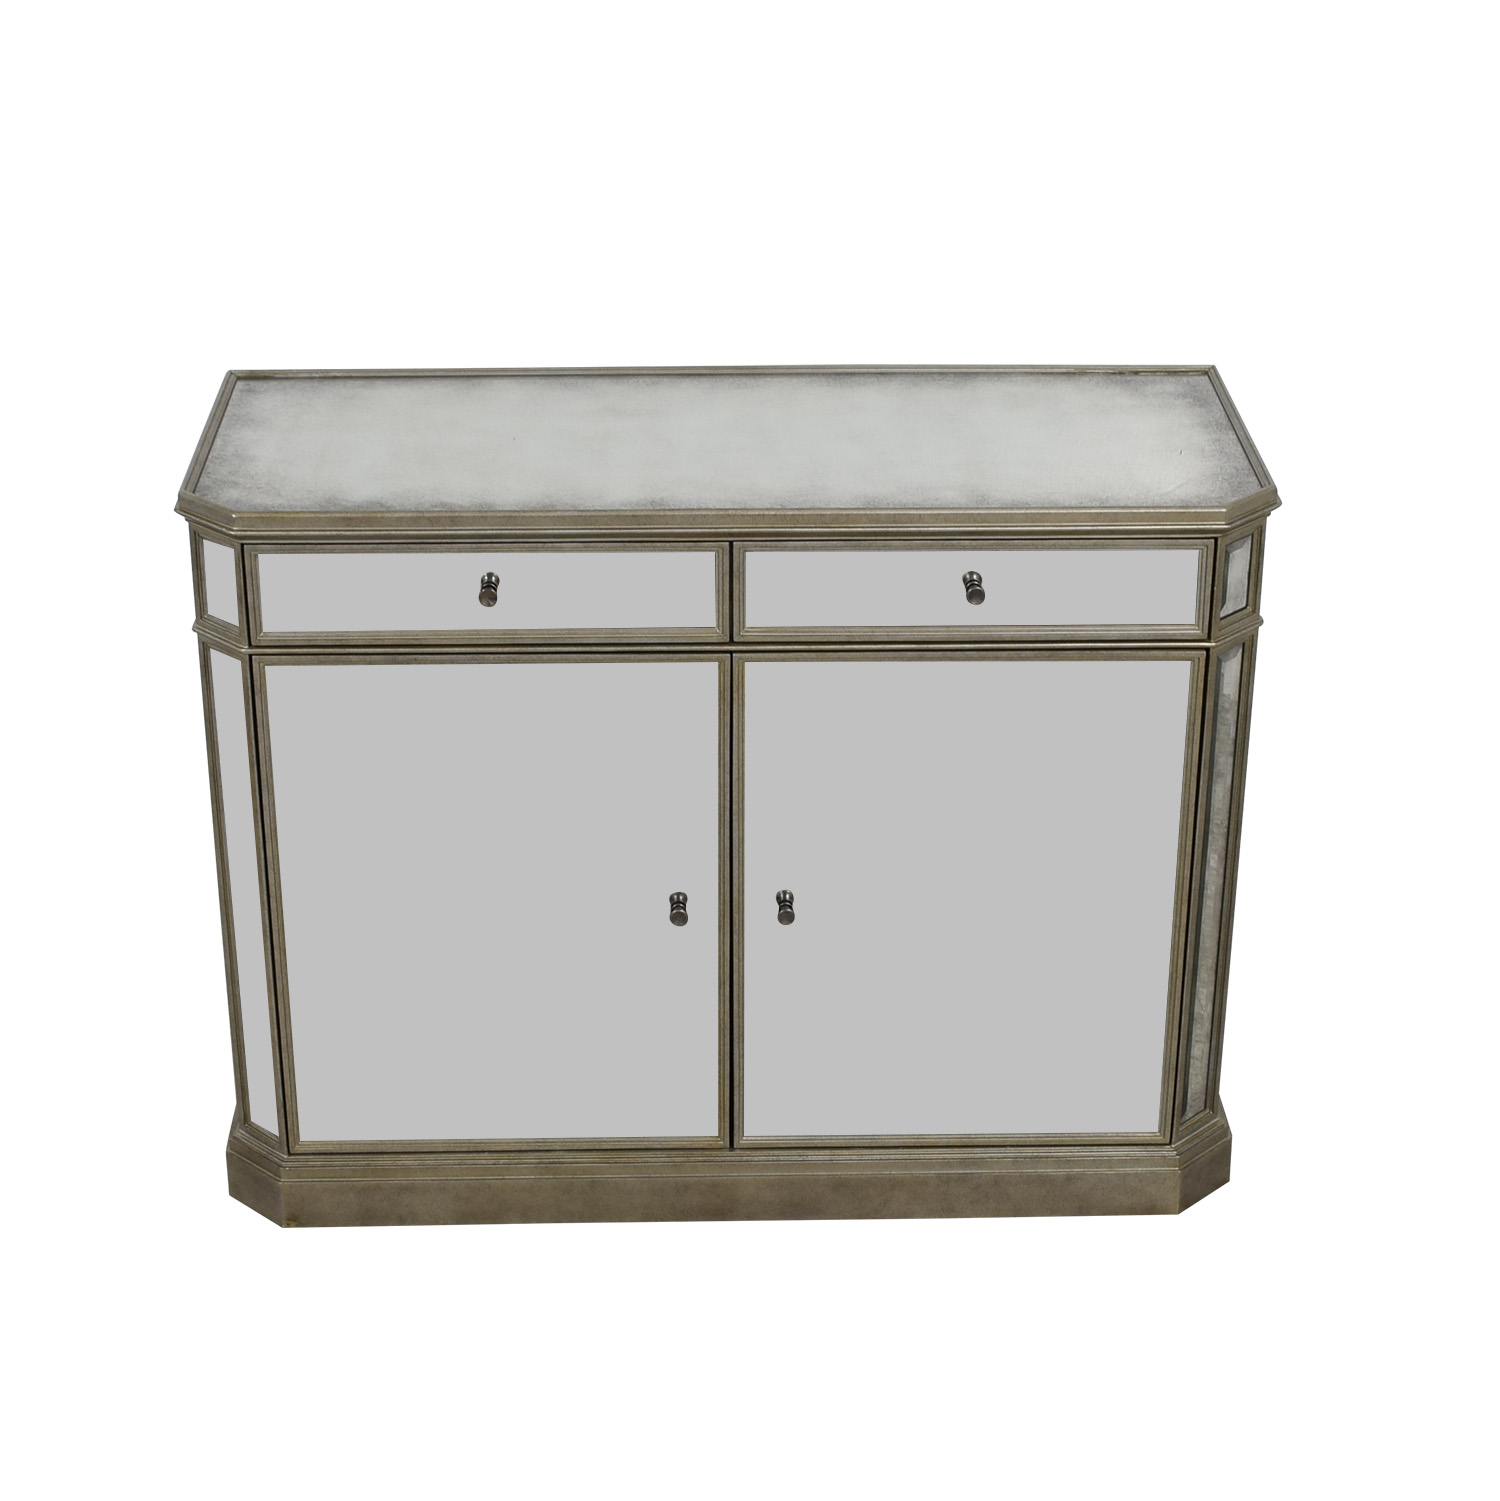 Restoration Hardware Restoration Hardware Mirrored Cabinet on sale